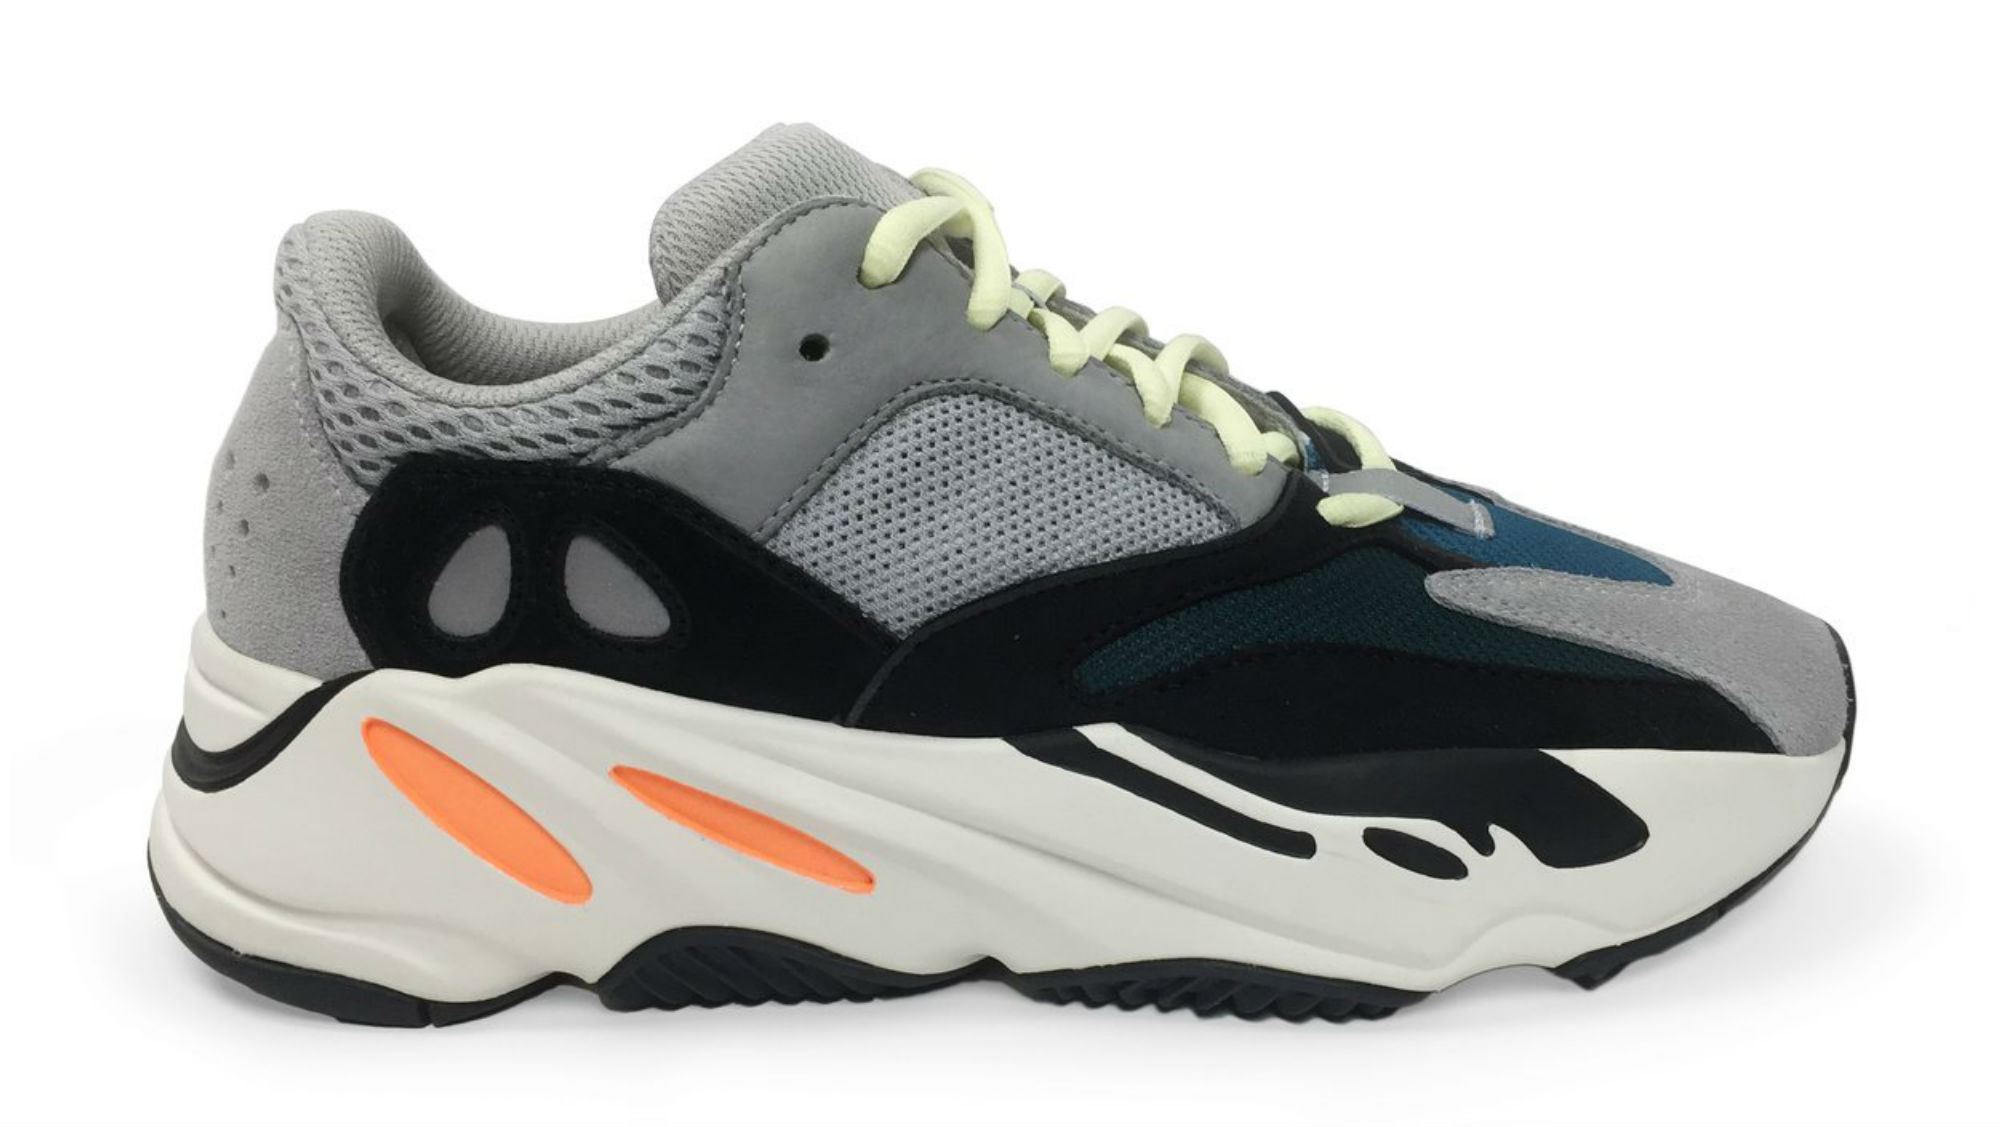 84caa0043 Adidas Yeezy Boost 700 Wave Runner Solid Grey Chalk White Core Black B75571  Release Date